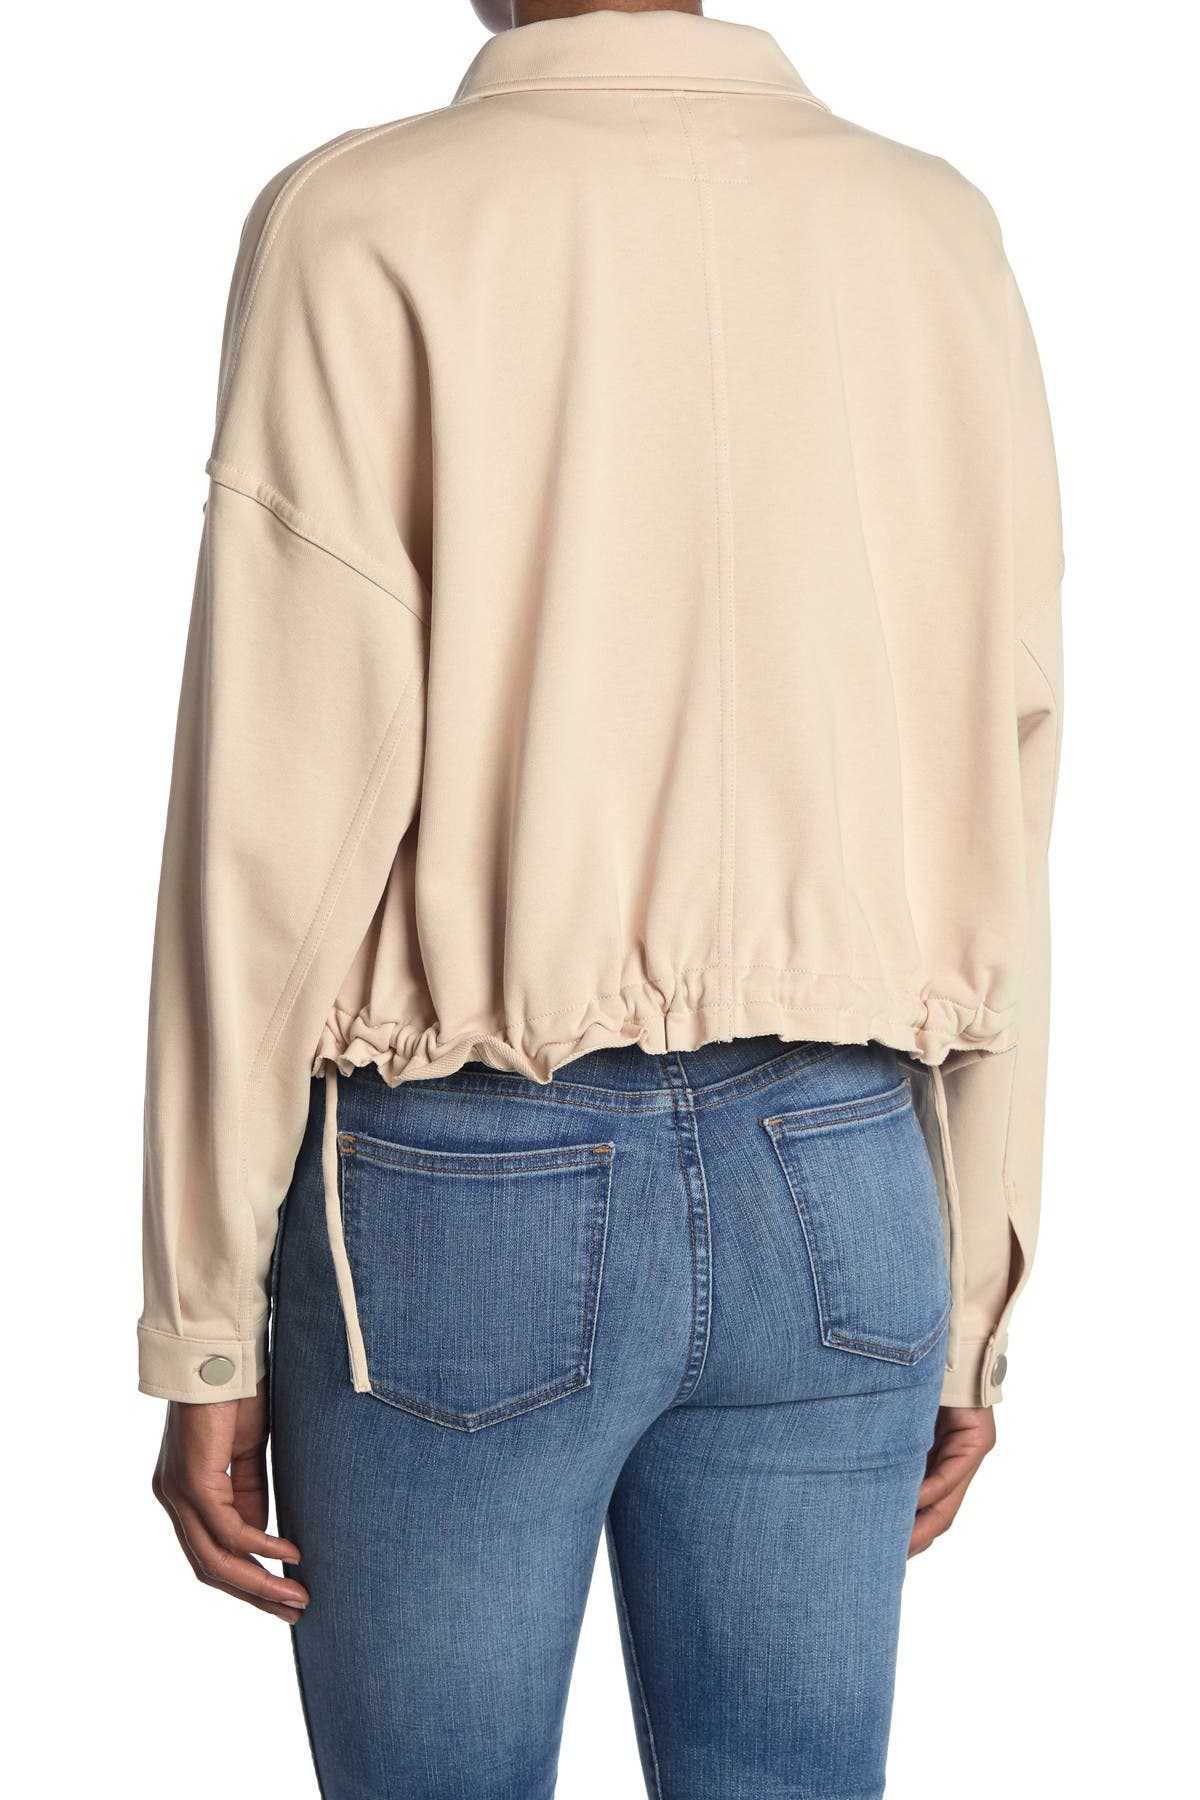 Image of Elodie Oversized Pocket Button Jacket